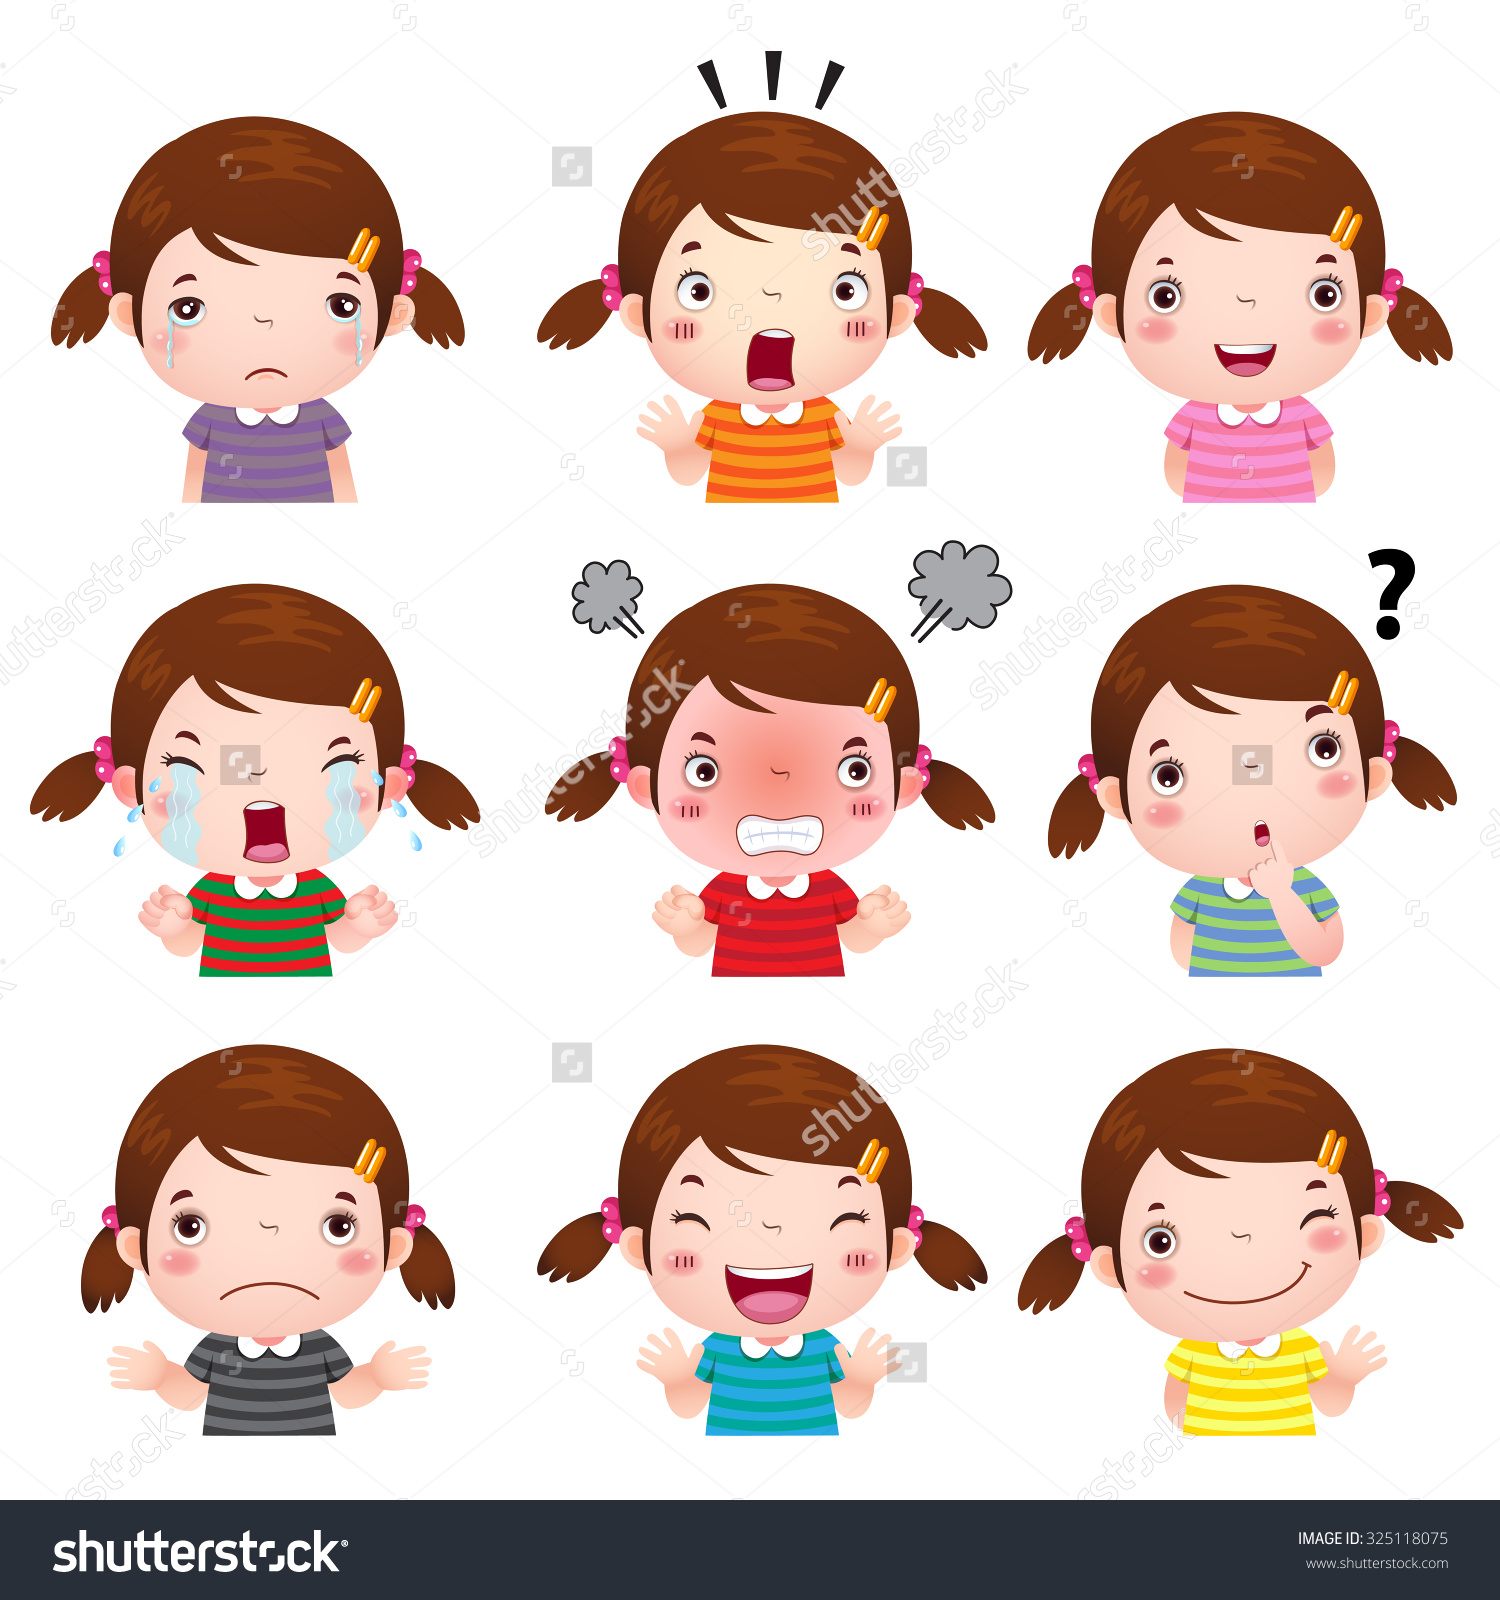 Girl showing id clipart graphic black and white library Illustration Cute Girl Faces Showing Different Stock Vector ... graphic black and white library